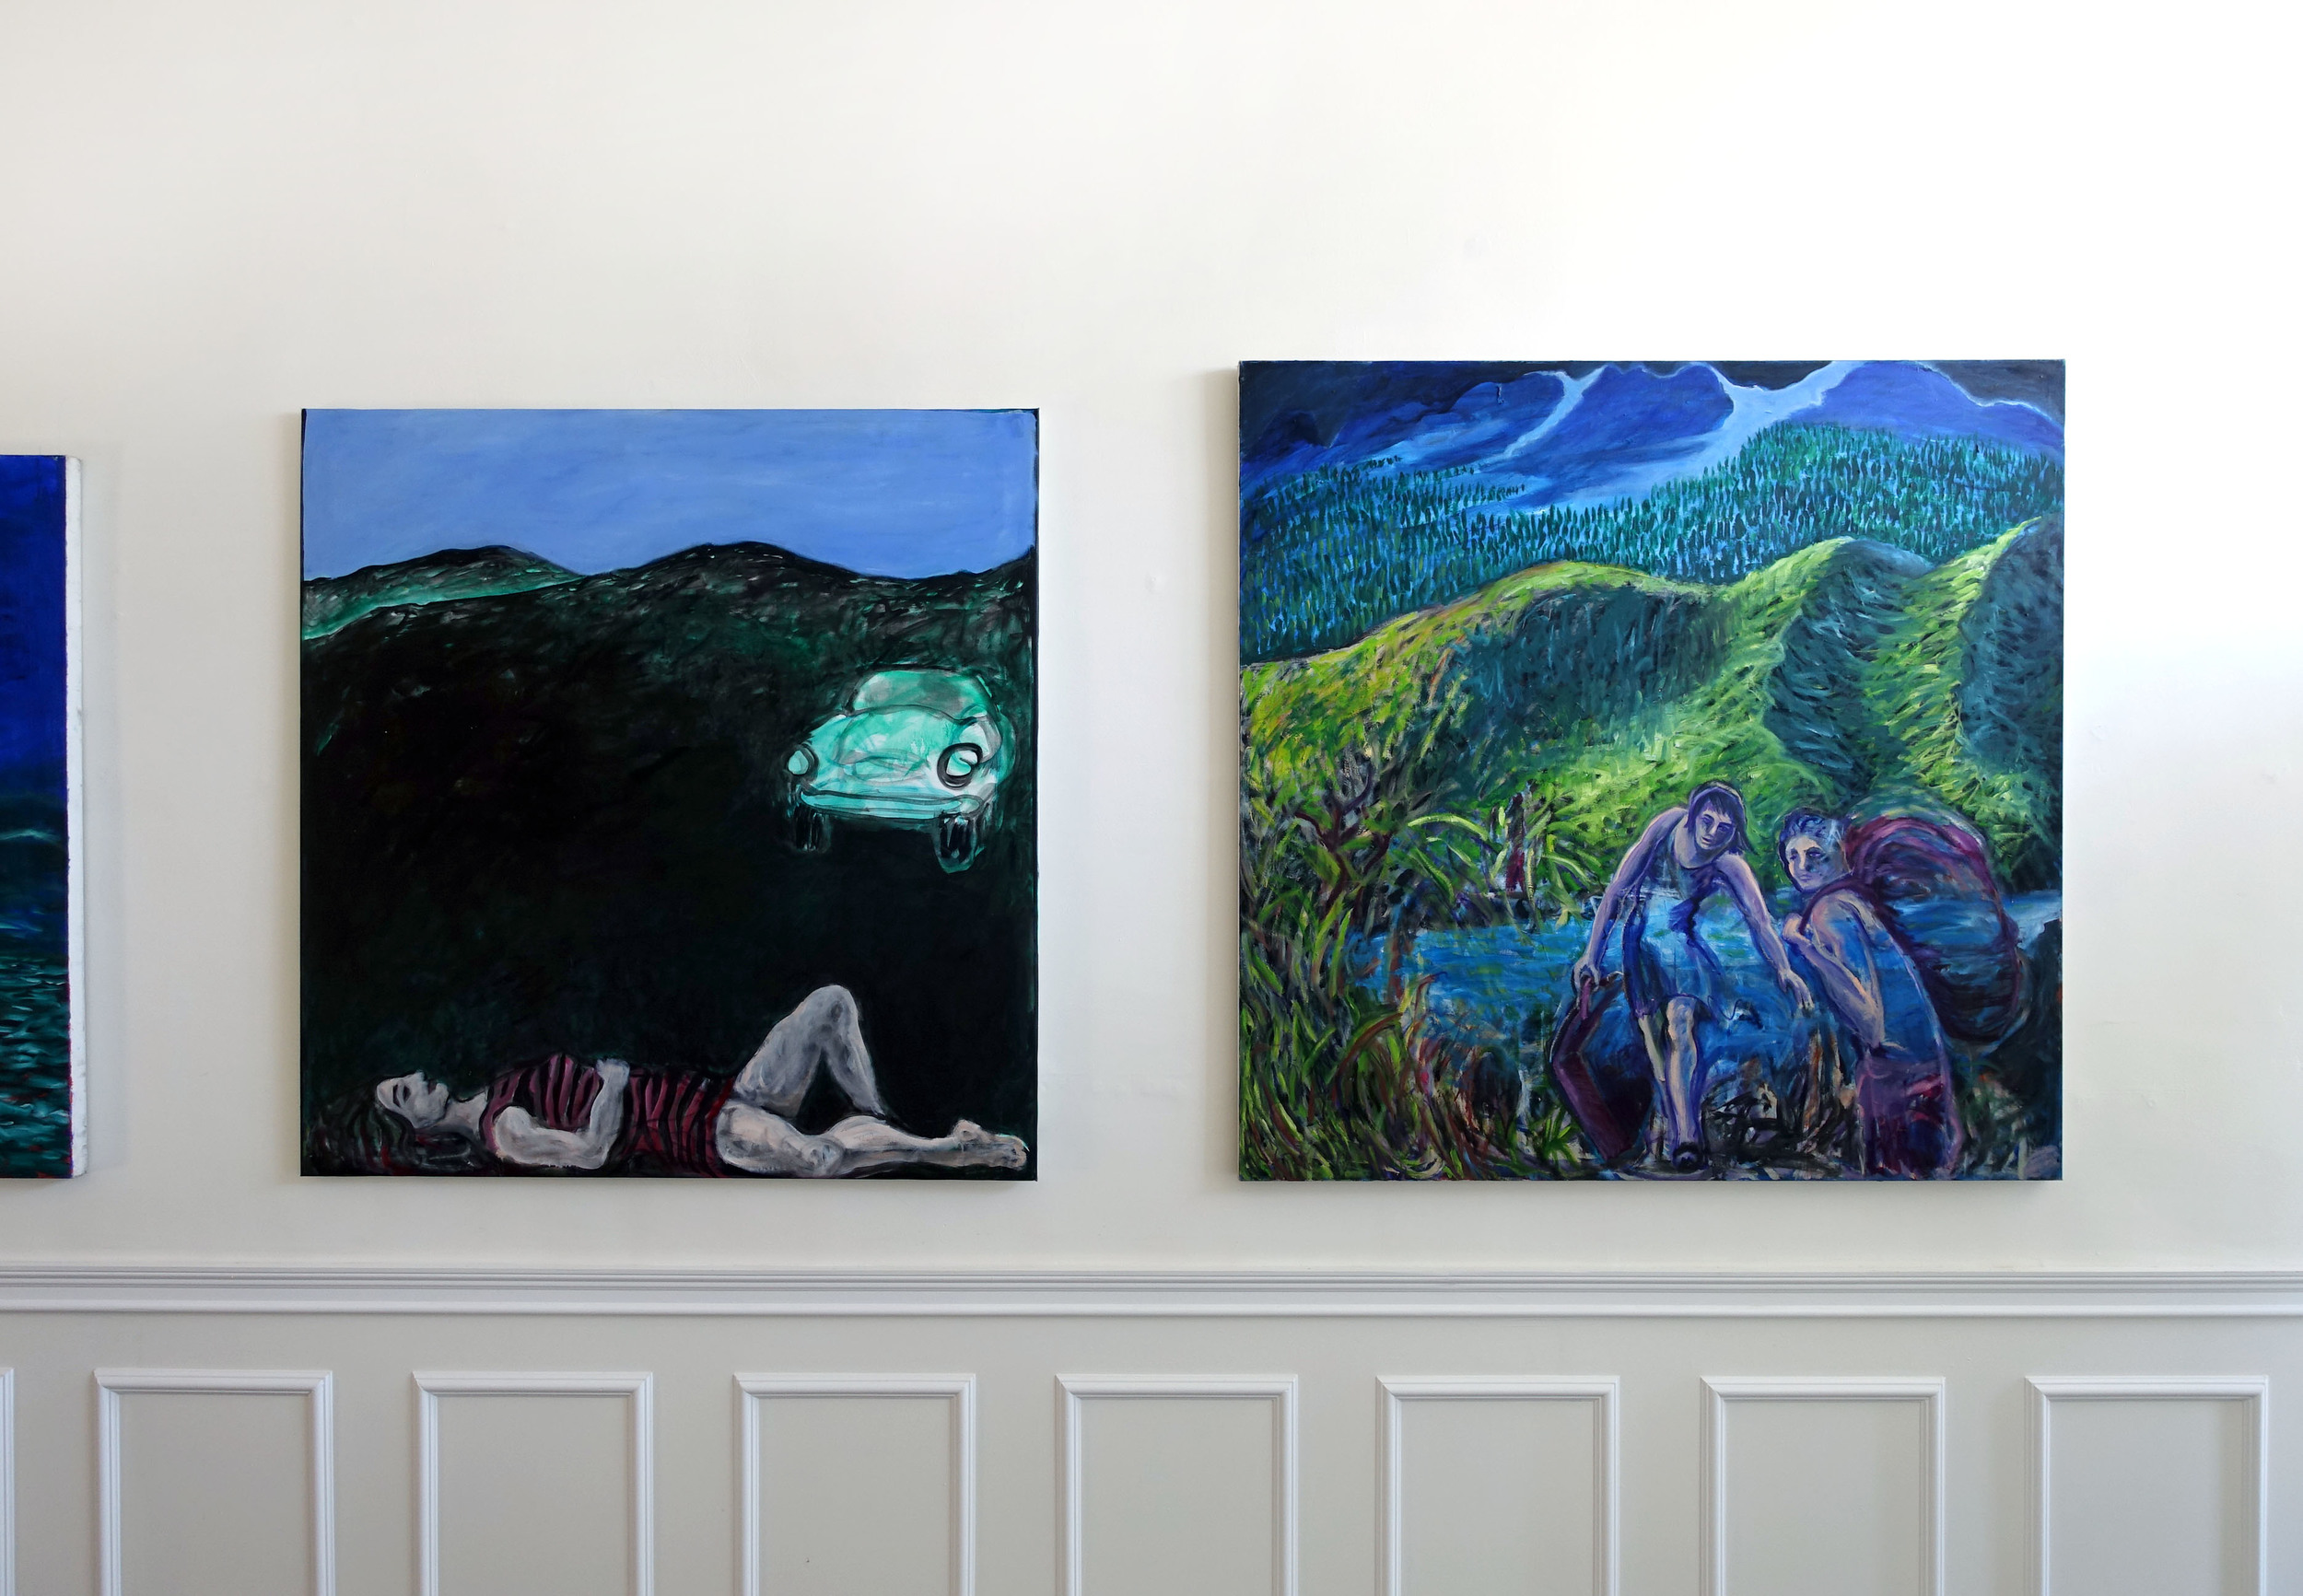 (left) HEADLIGHTS 49 x 49in Oil on canvas  (right) TRAVELERS HIKE 54 x 54in Oil on canvas